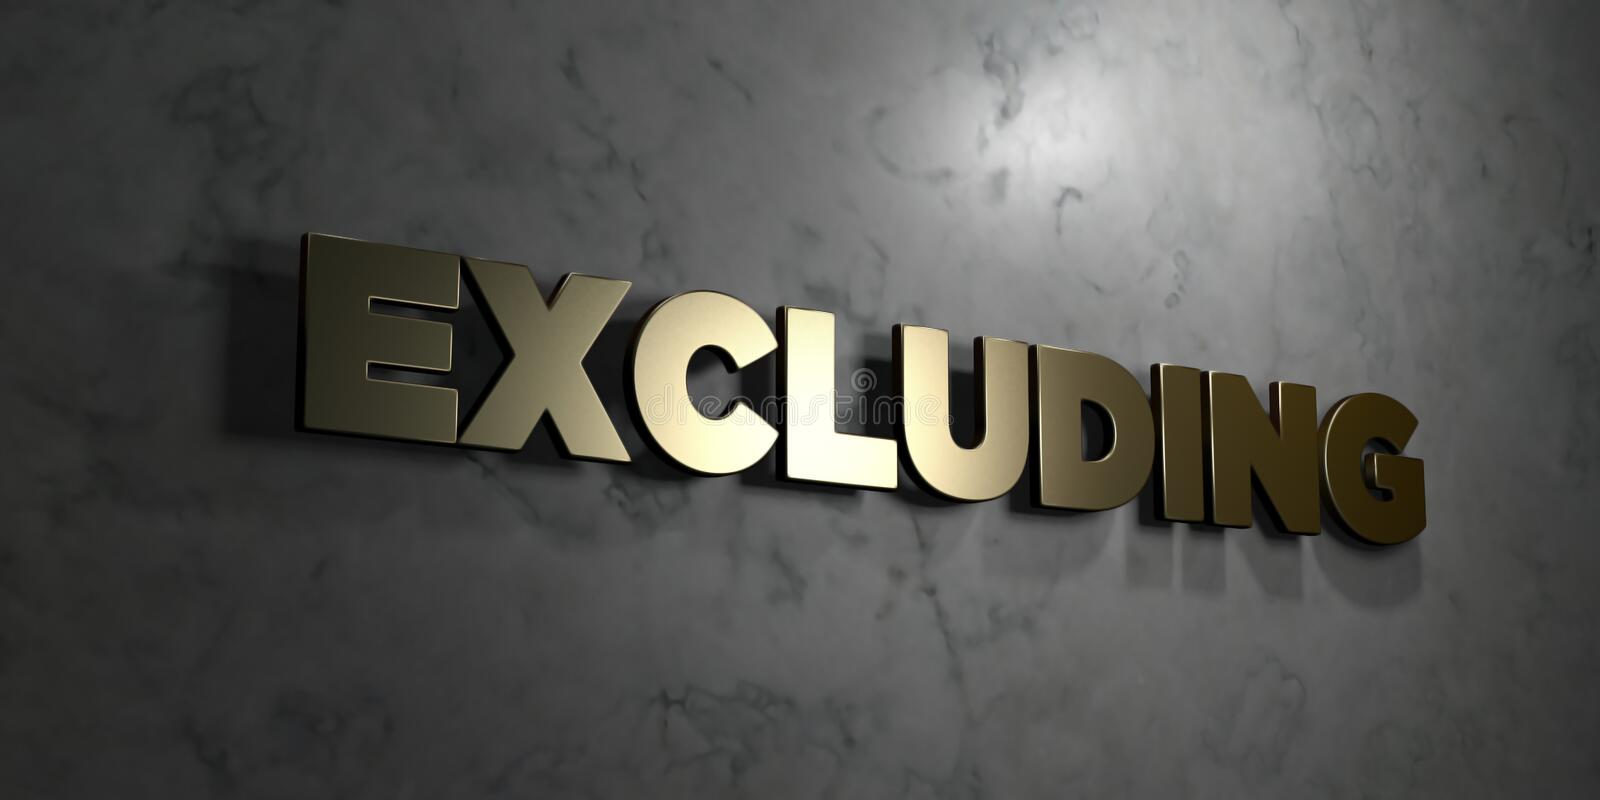 Excluding - Gold text on black background - 3D rendered royalty free stock picture. This image can be used for an online website banner ad or a print postcard stock illustration